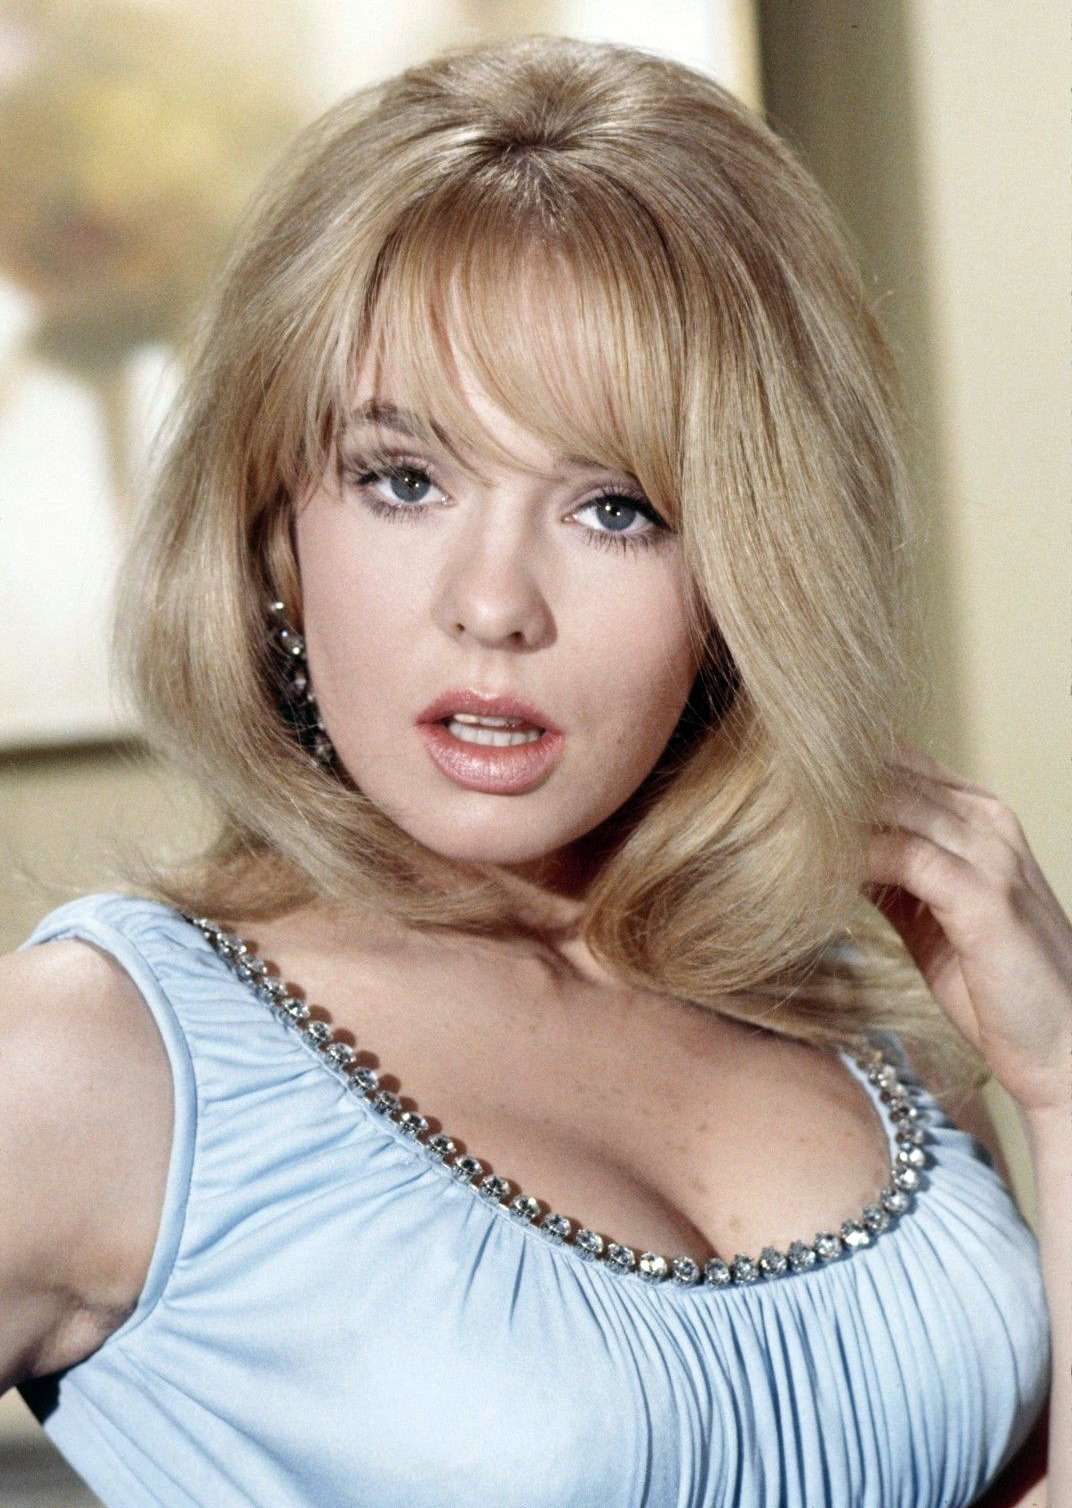 photo Joey Heatherton